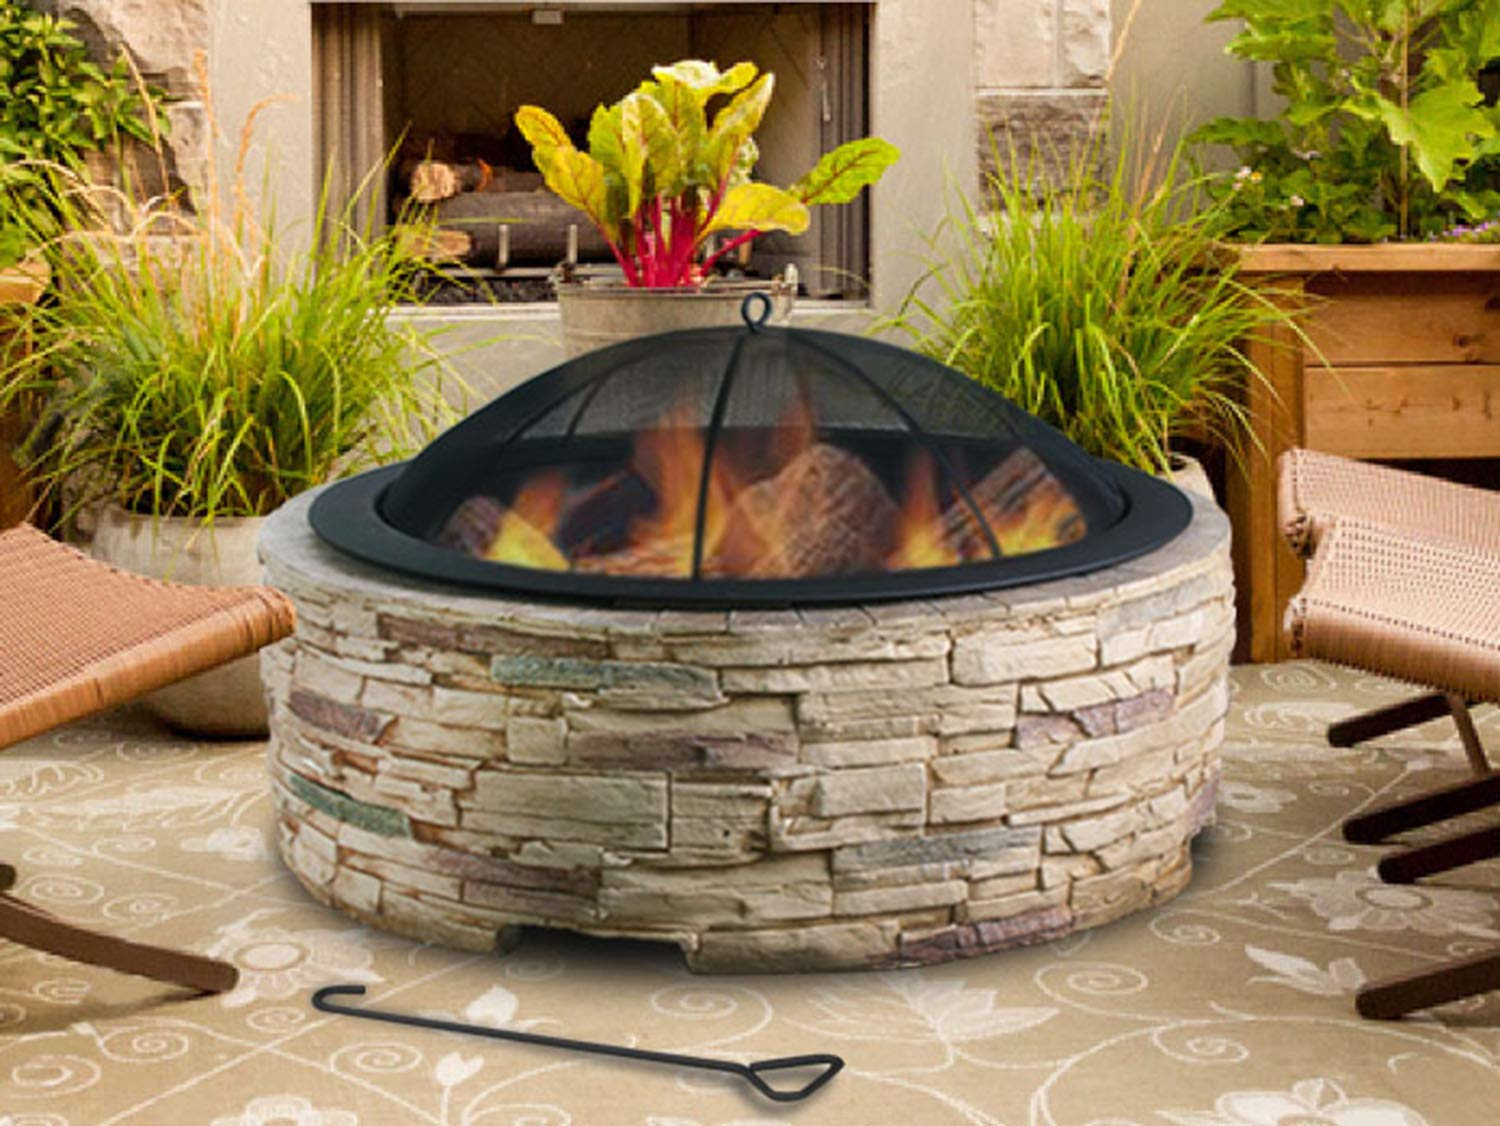 Artestia 36'' Stylish Glass Reinforced Concrete (GRC) Fire Pit, Black High Heat Resistant Powder Coating Steel Bowl, Simulated Stone Base, Outdoor Wood Burning Bonfire in Front or Back Yard, Patio by Artestia